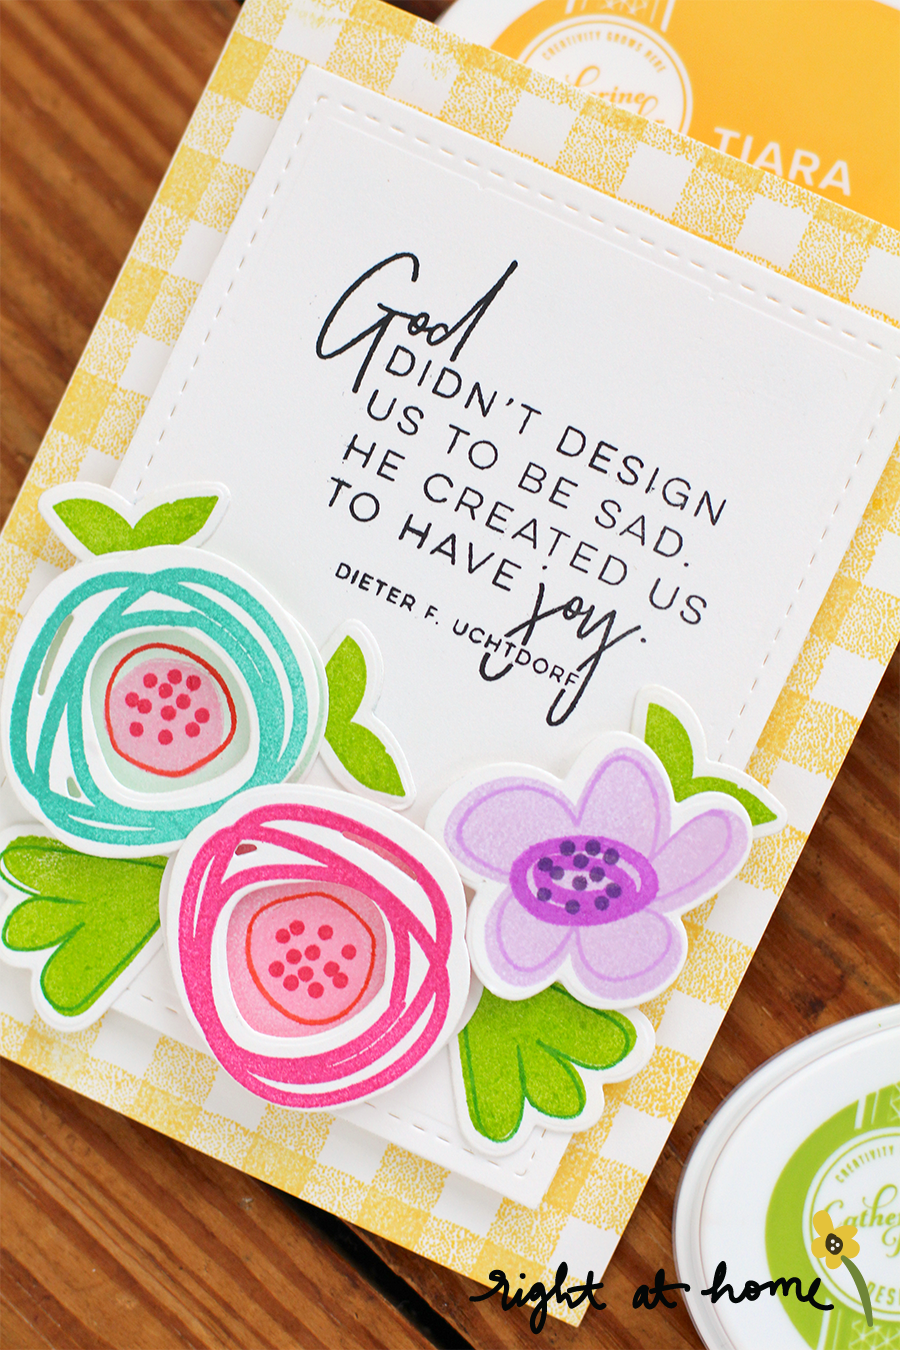 Have Joy Abstract Florals Card // National Craft Month with Right at Home + A Rare Ruby Crafts - rightathomeshop.com/blog